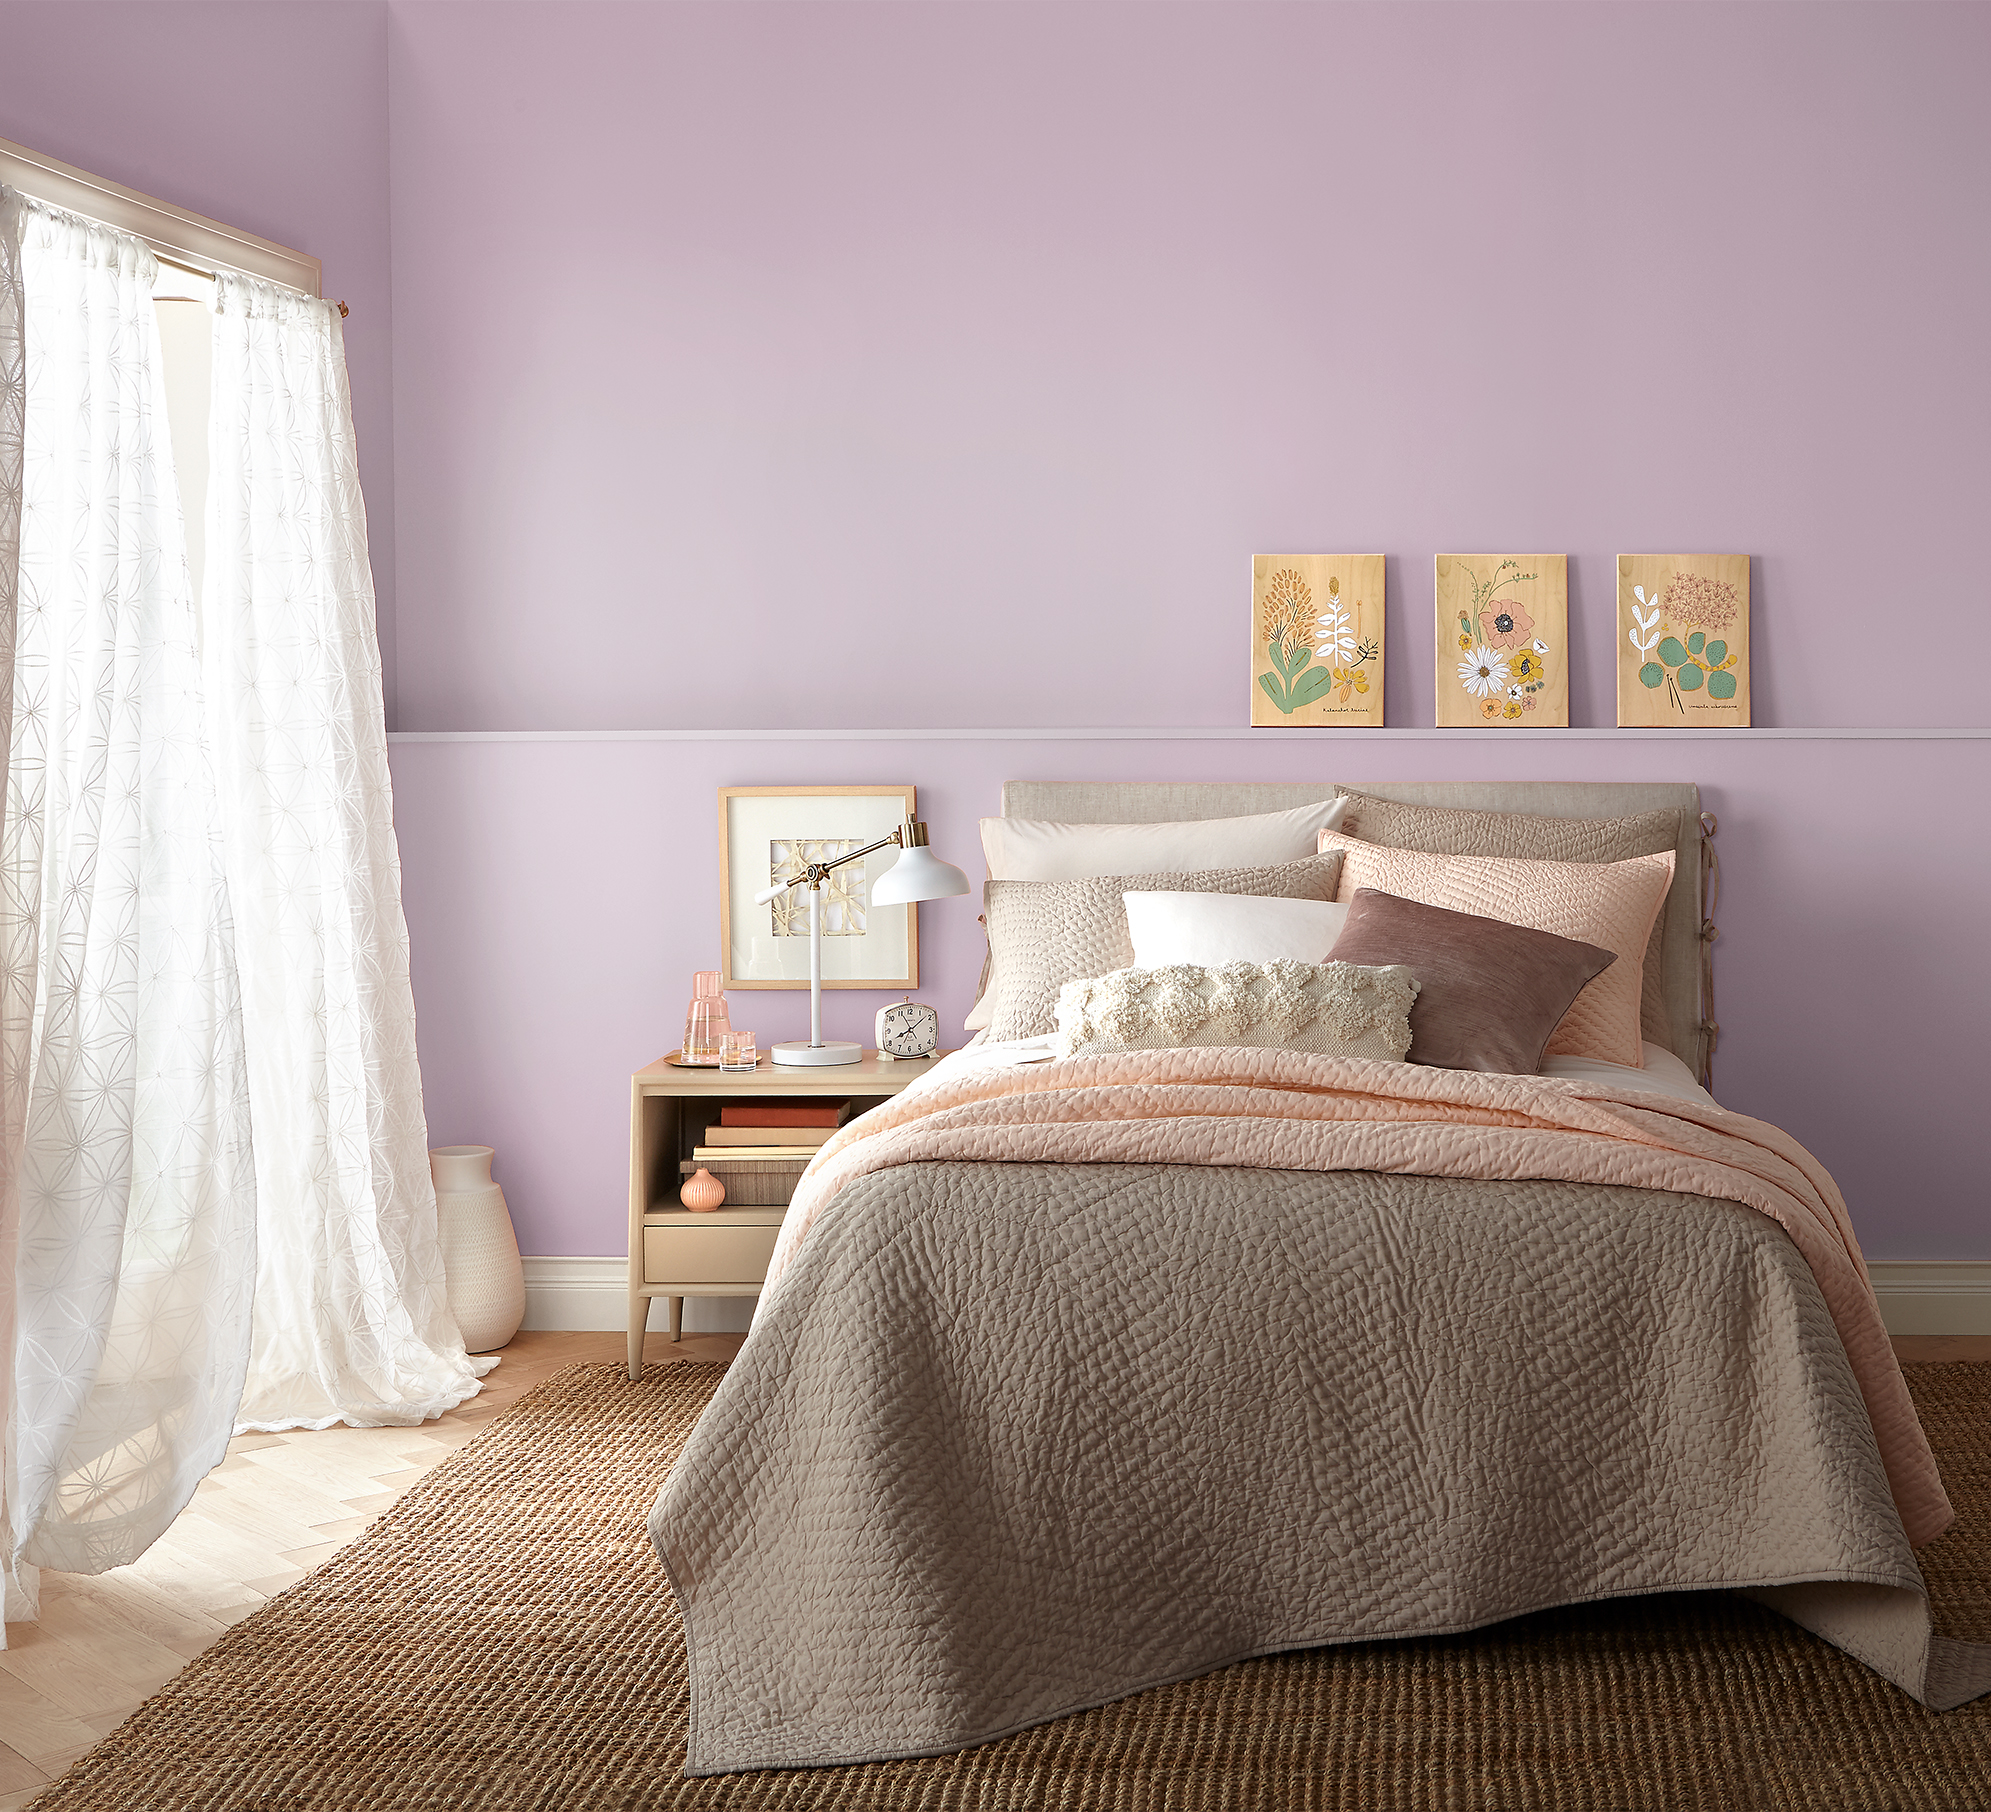 The Bedroom Colors You\'ll See Everywhere in 2019 | Martha ...